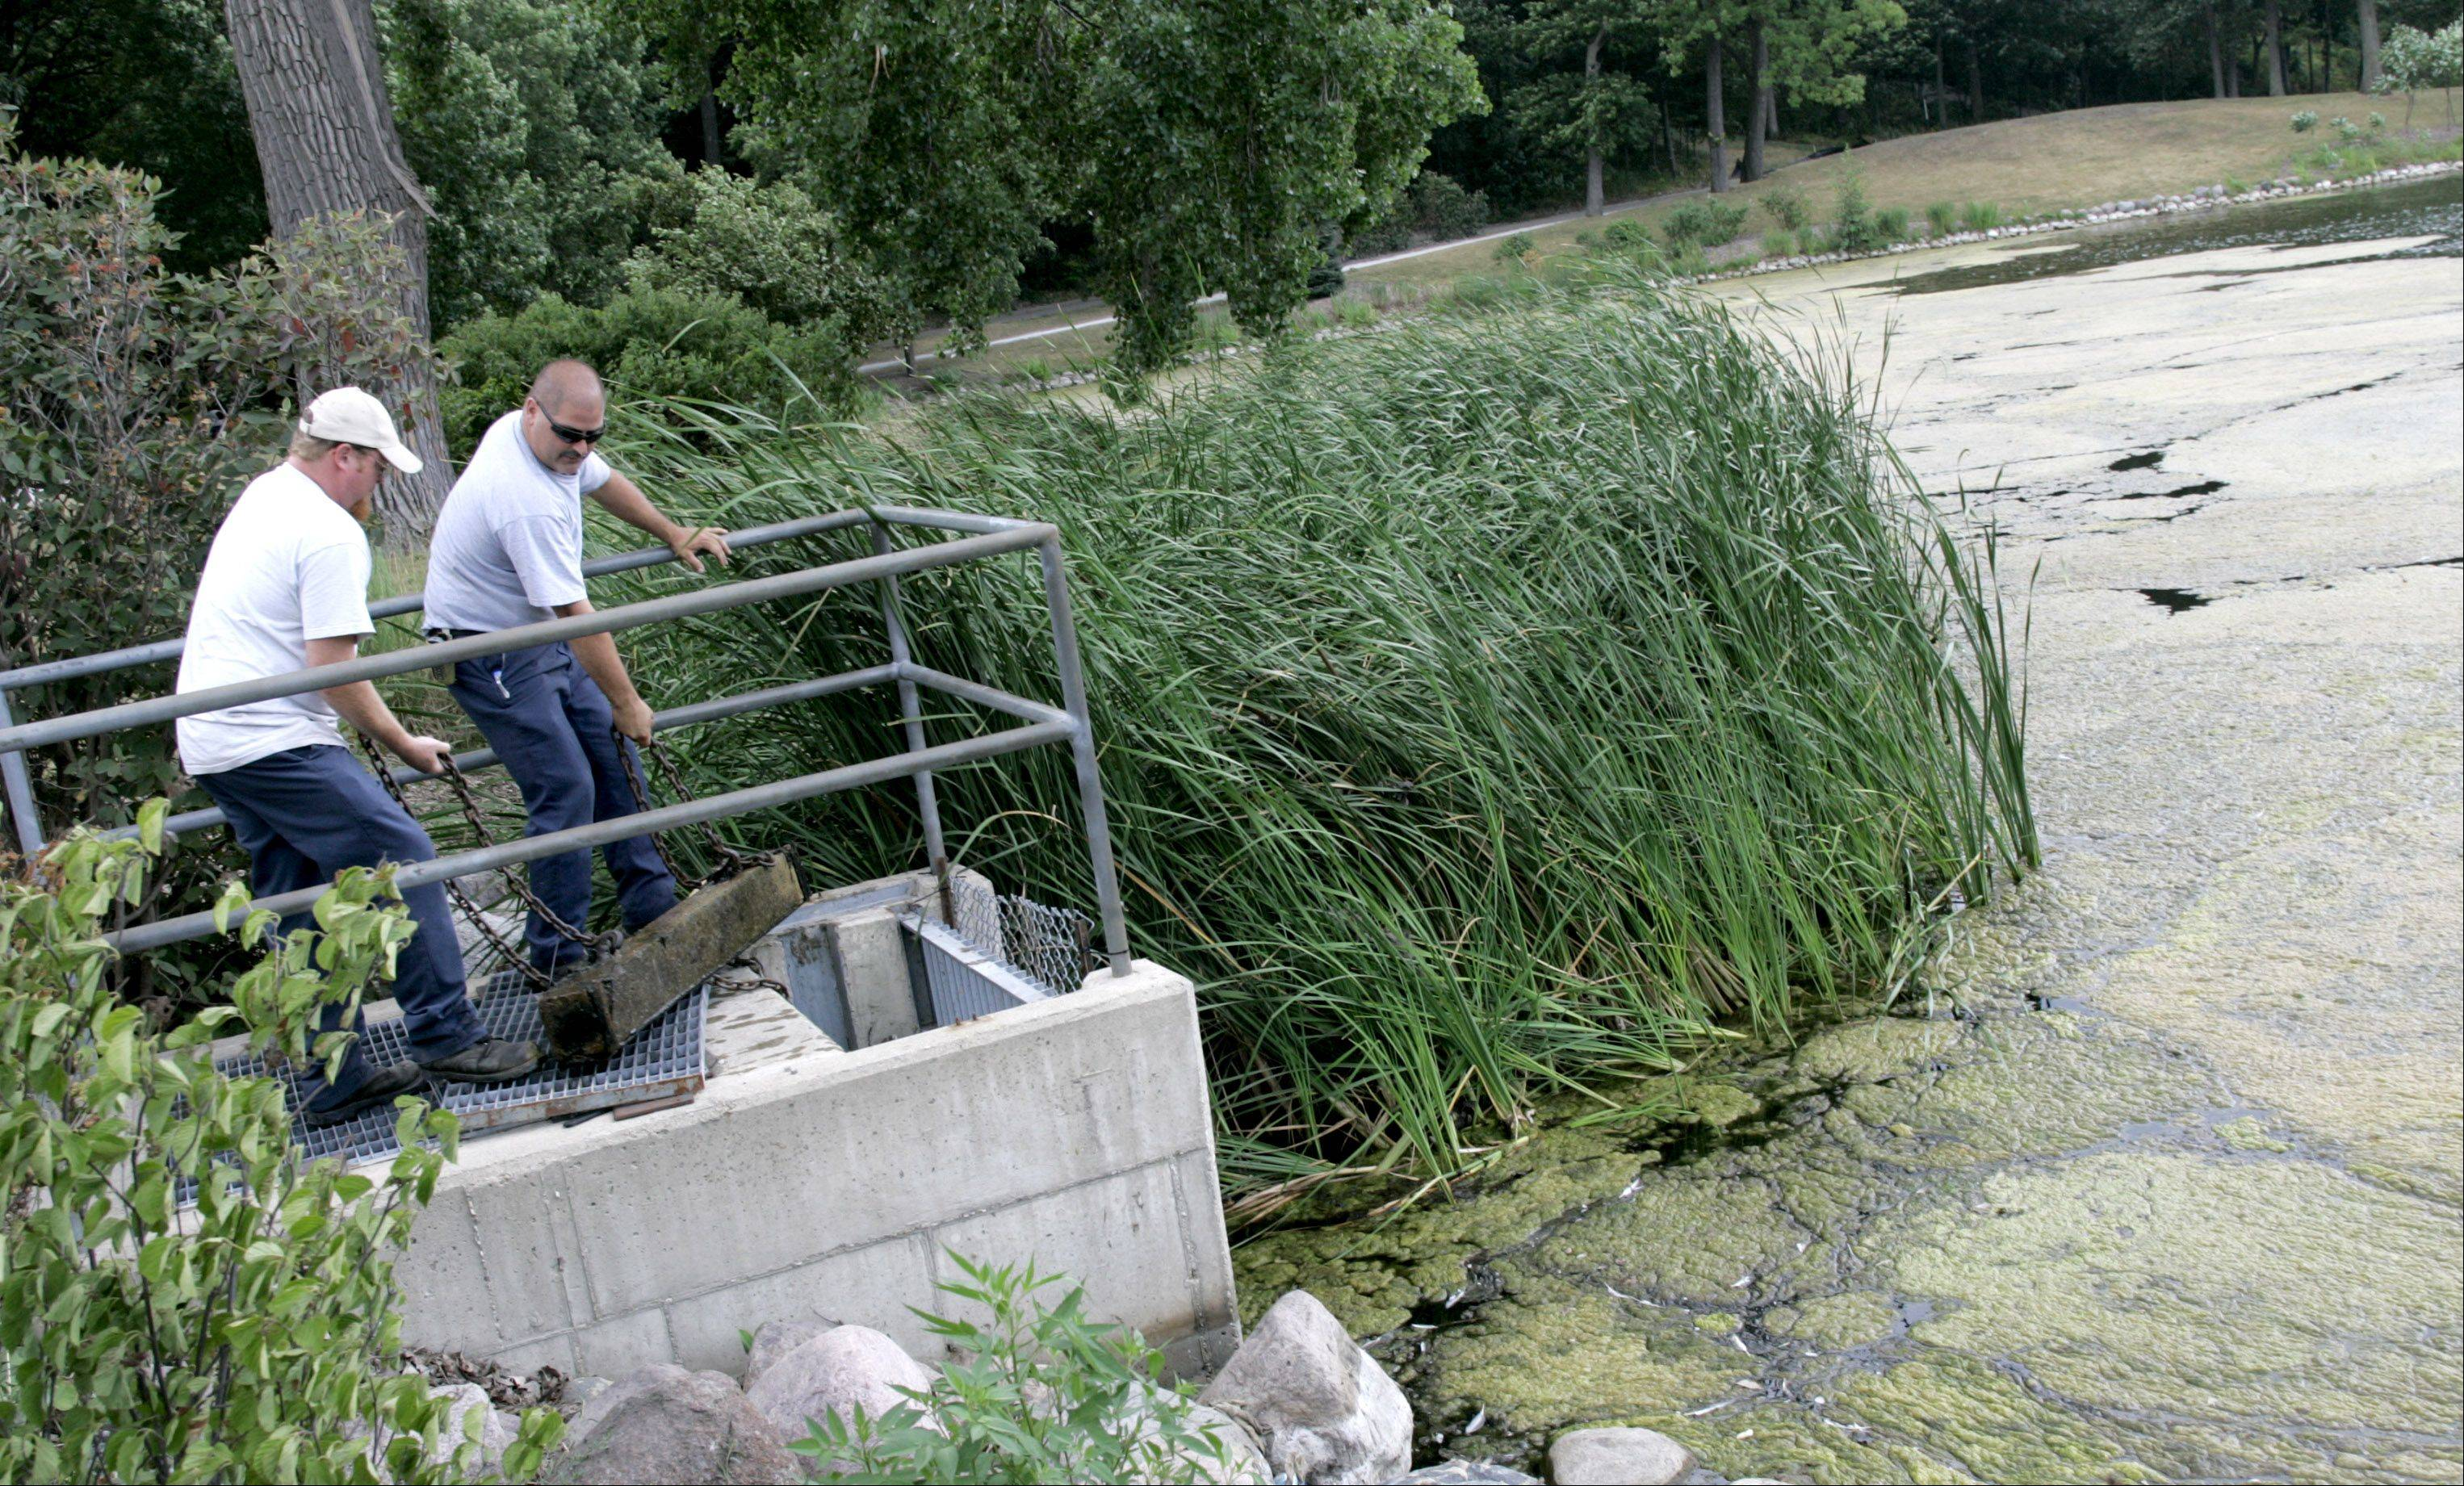 Lake Ellyn in Glen Ellyn, seen here in a Daily Herald file photo, has been experiencing increased algae growth and more noticeable fish kills lately because of the recent heat wave and droughtlike conditions.